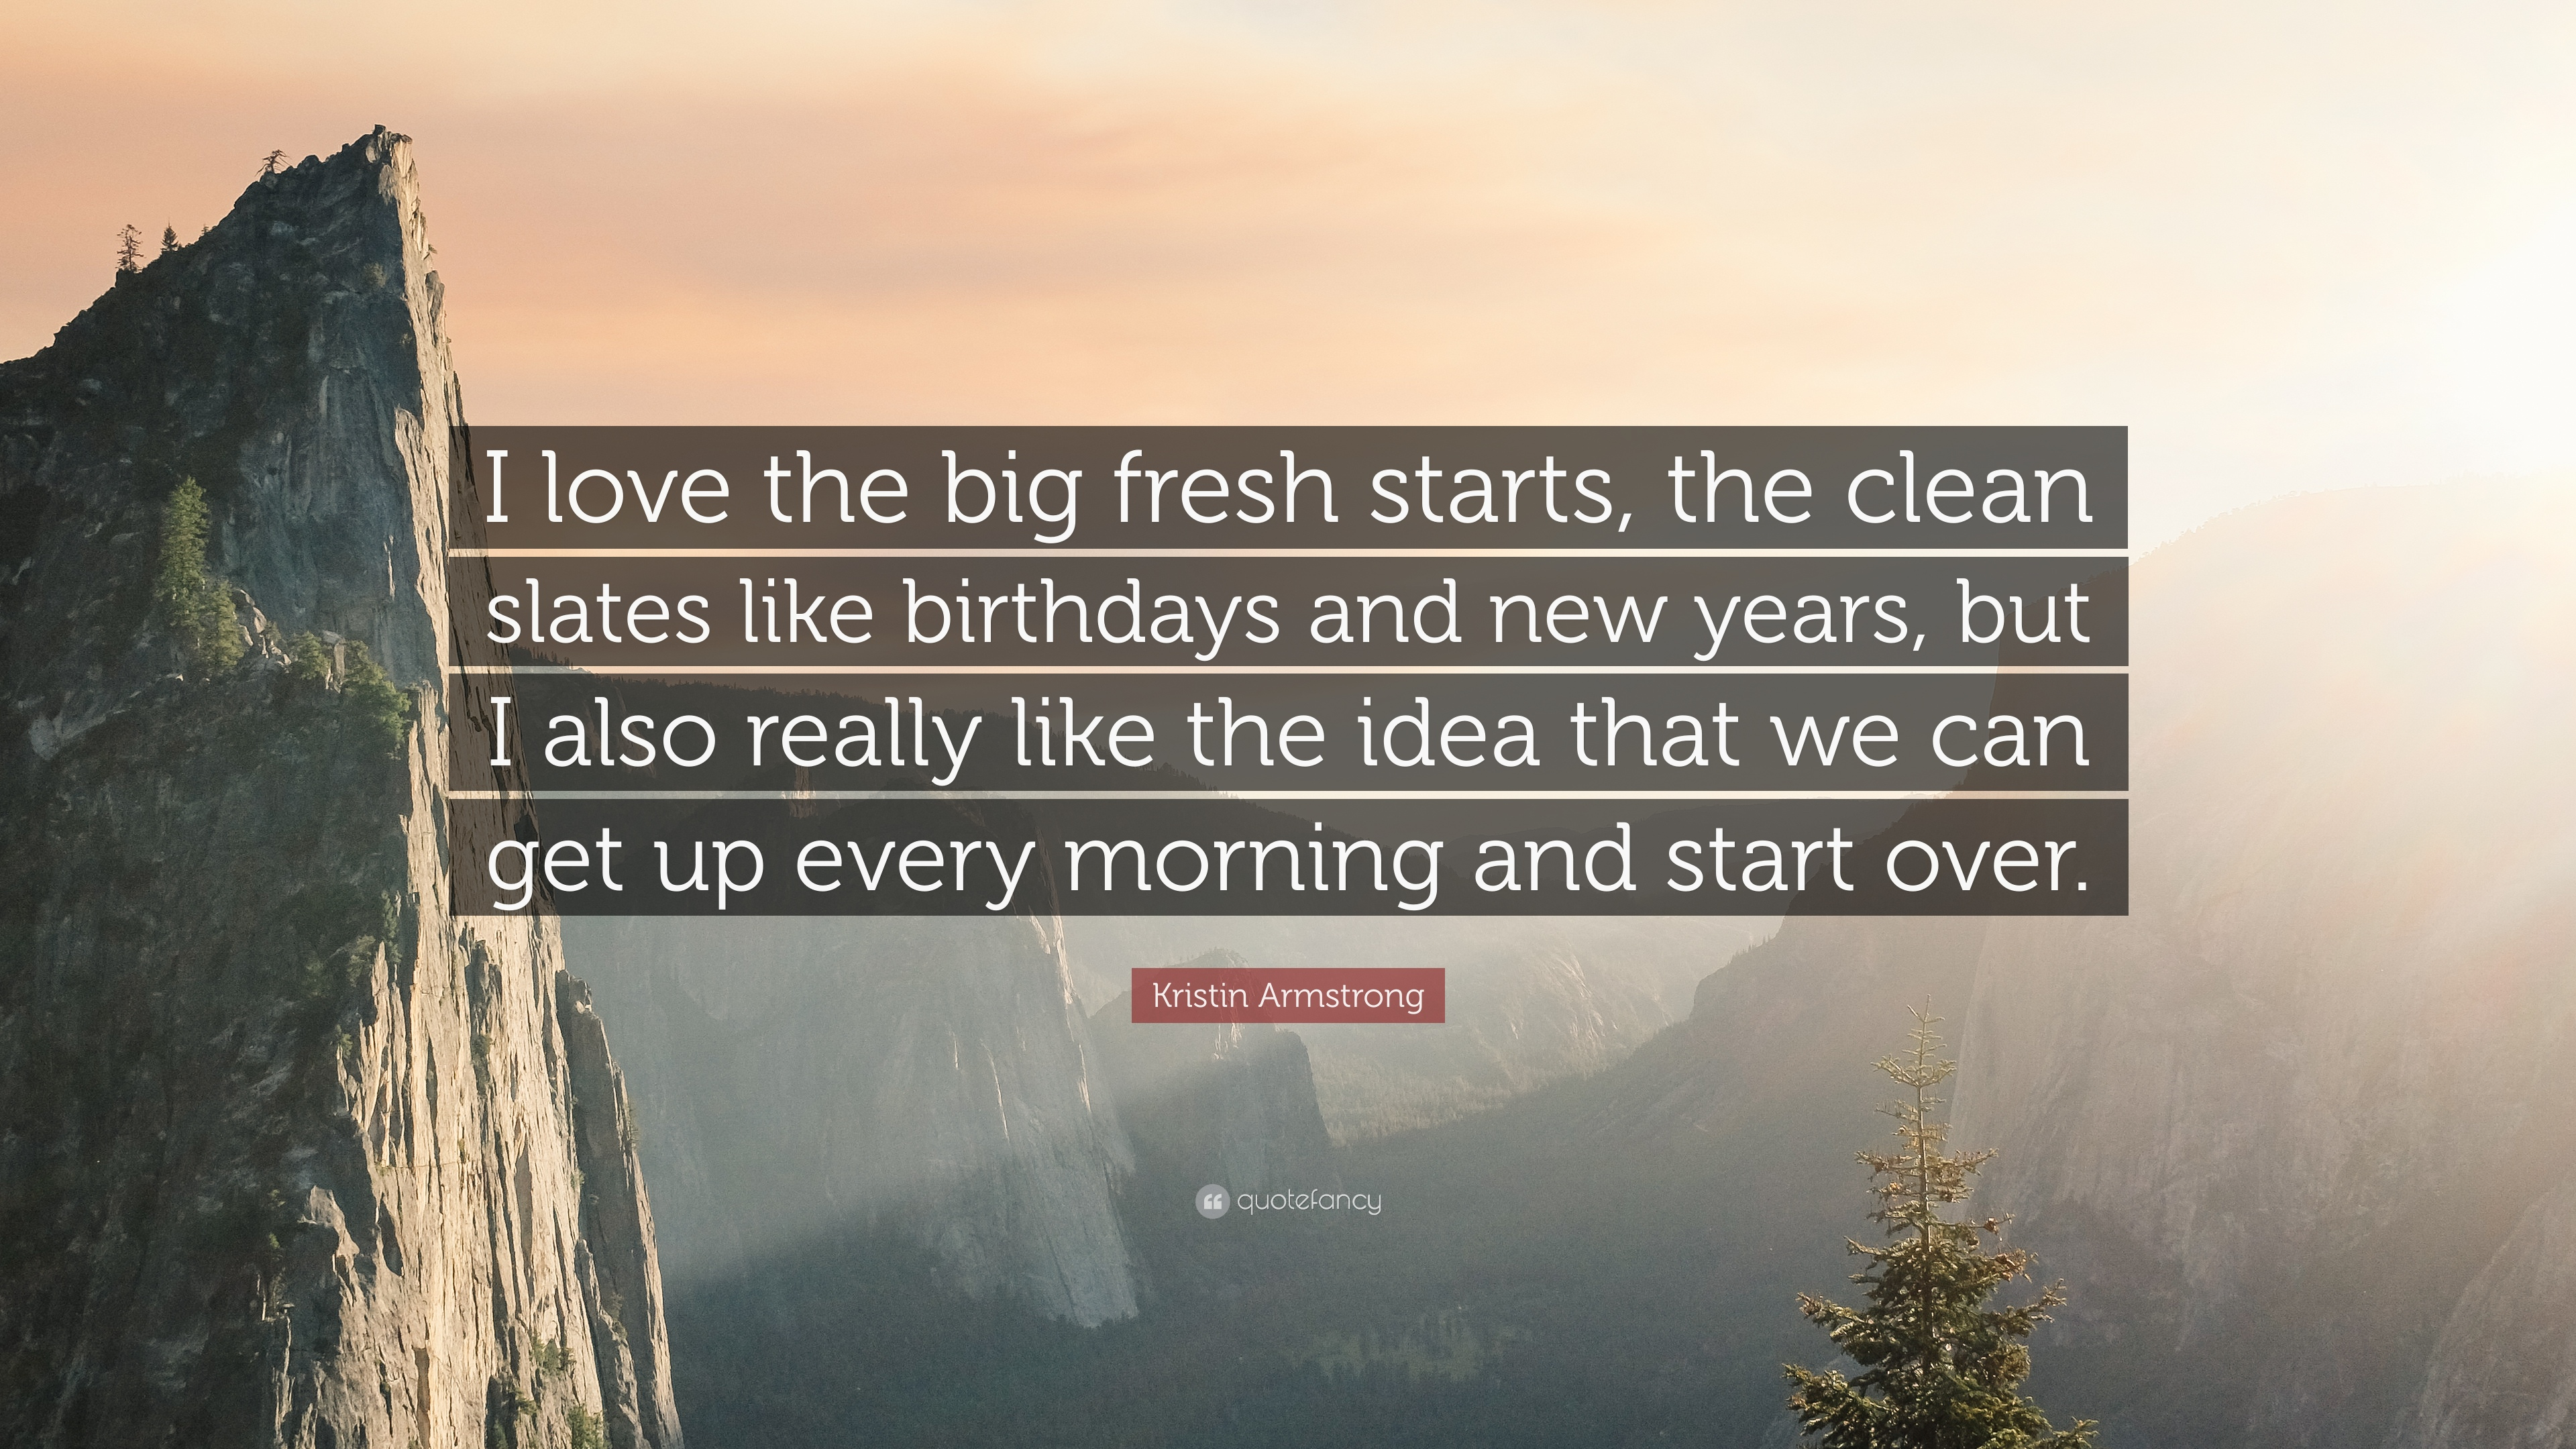 kristin armstrong quote i love the big fresh starts the clean slates like